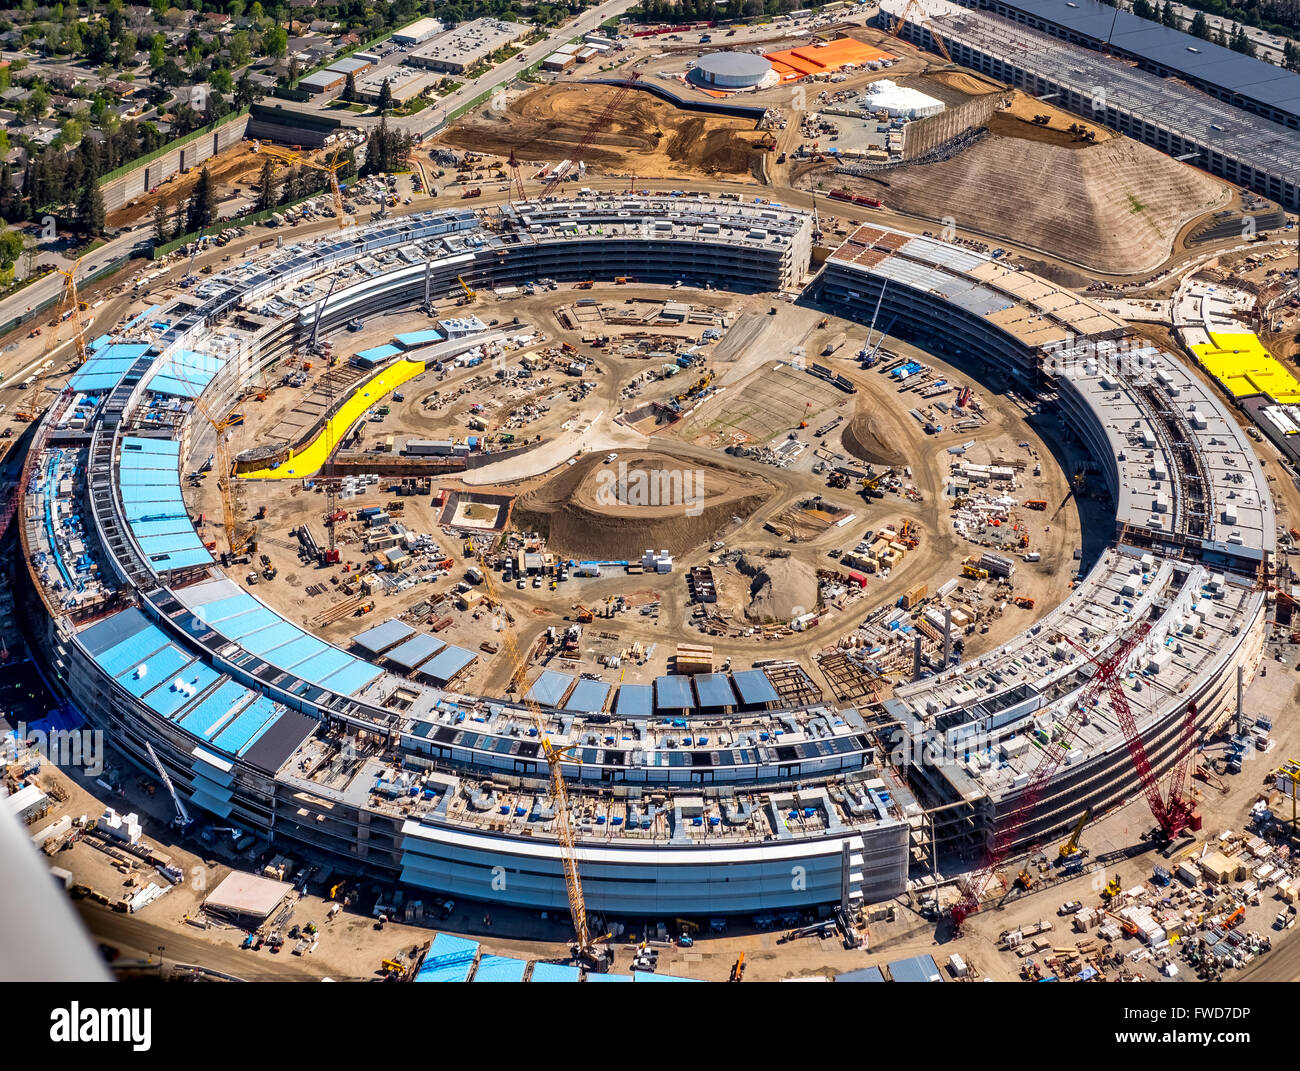 apple cupertino office. New Apple Campus II, Aerial, Computer Under Construction In Cupertino, Silicon Valley, California, Round Cupertino Office